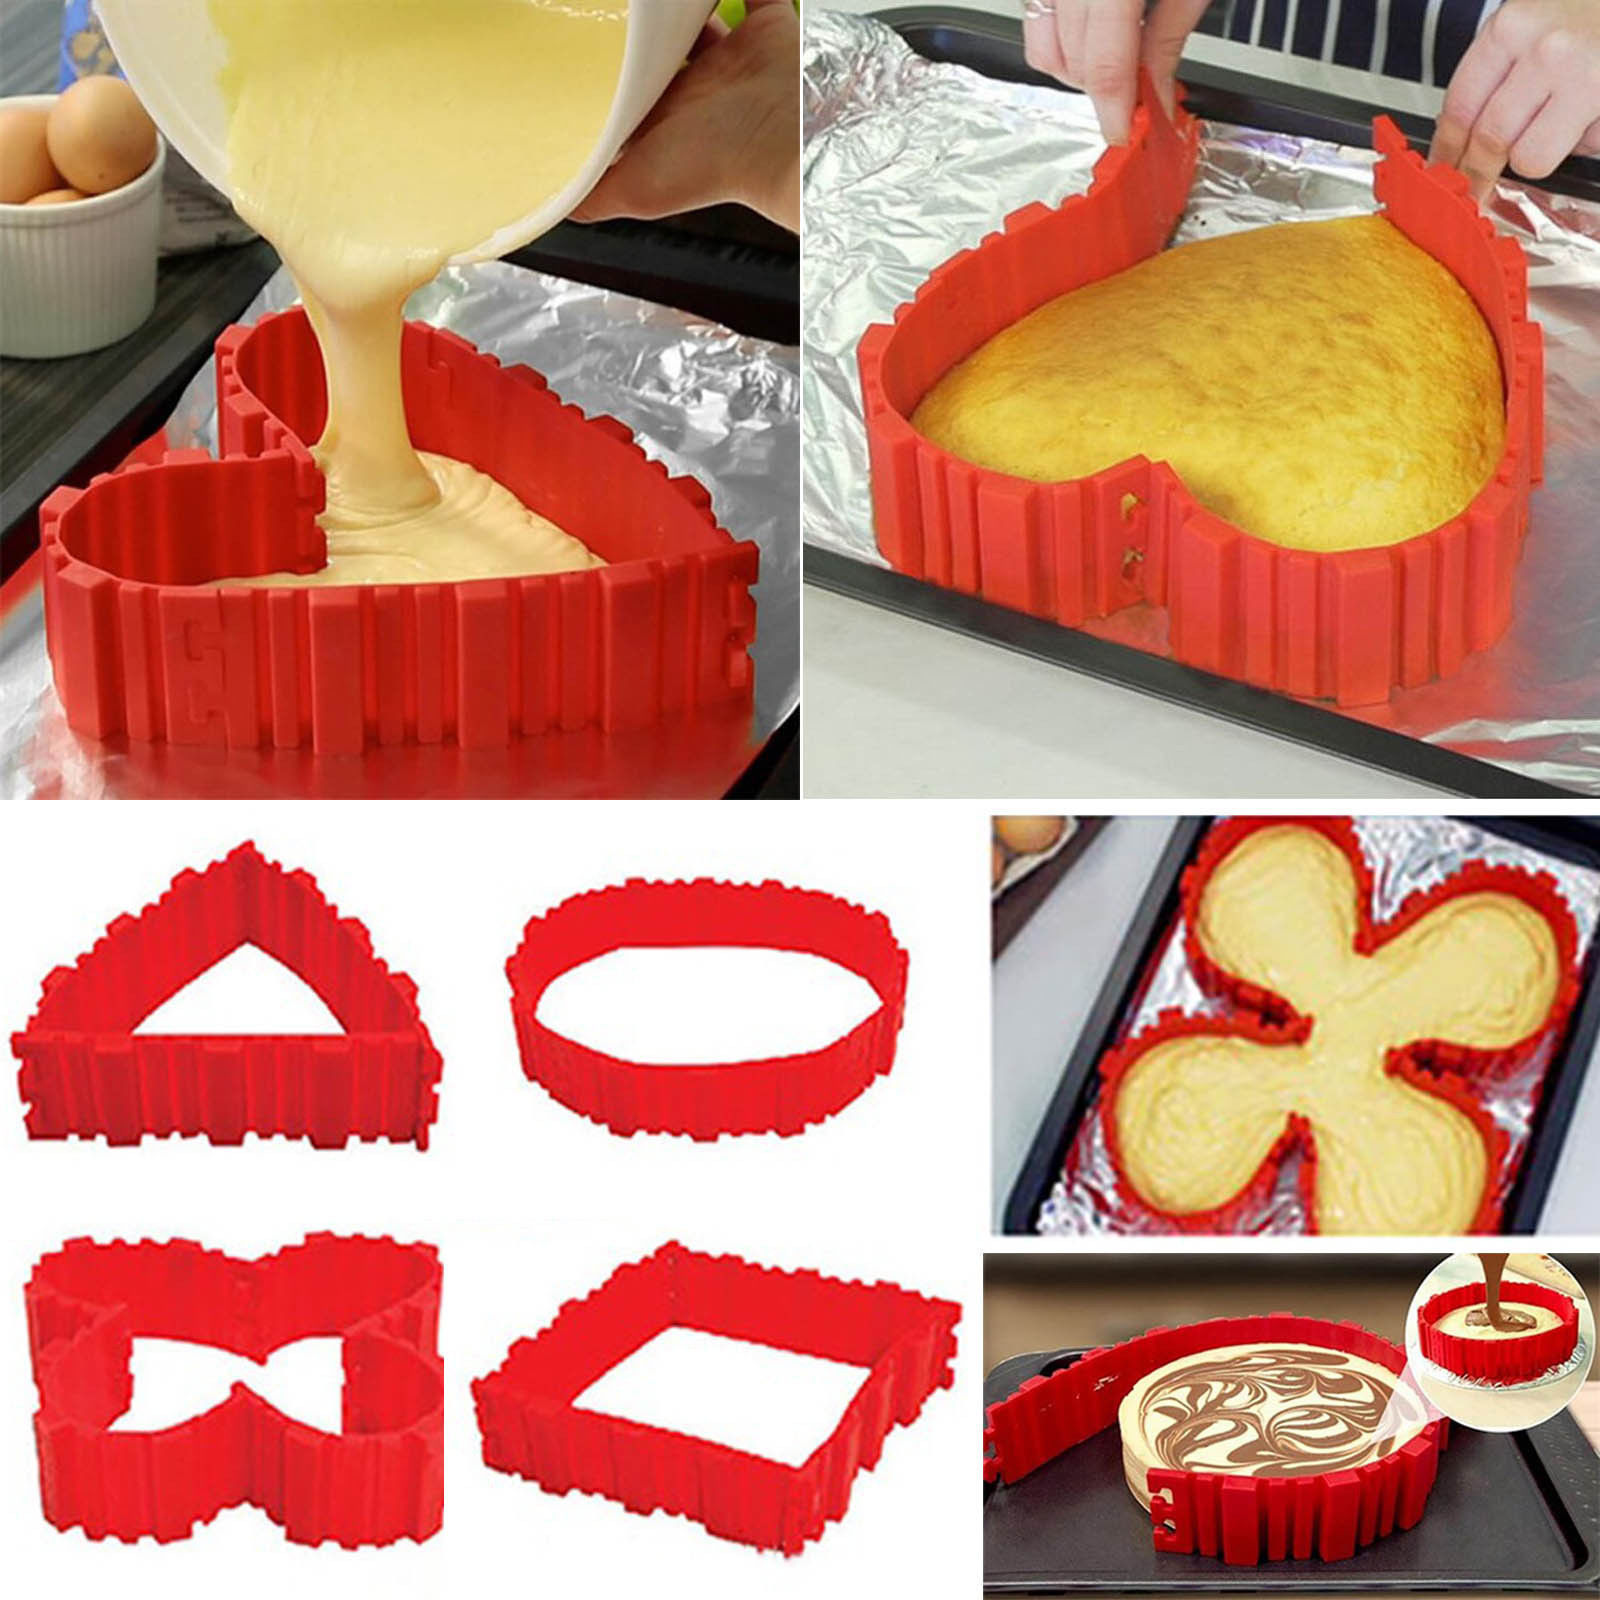 4pcs / Lot Magic Cake Mould Bake ormar Mat Betyg Silikon Pan Kvadrat Rektangulärt Hjärta Runda DIY Bake Snake Mögel